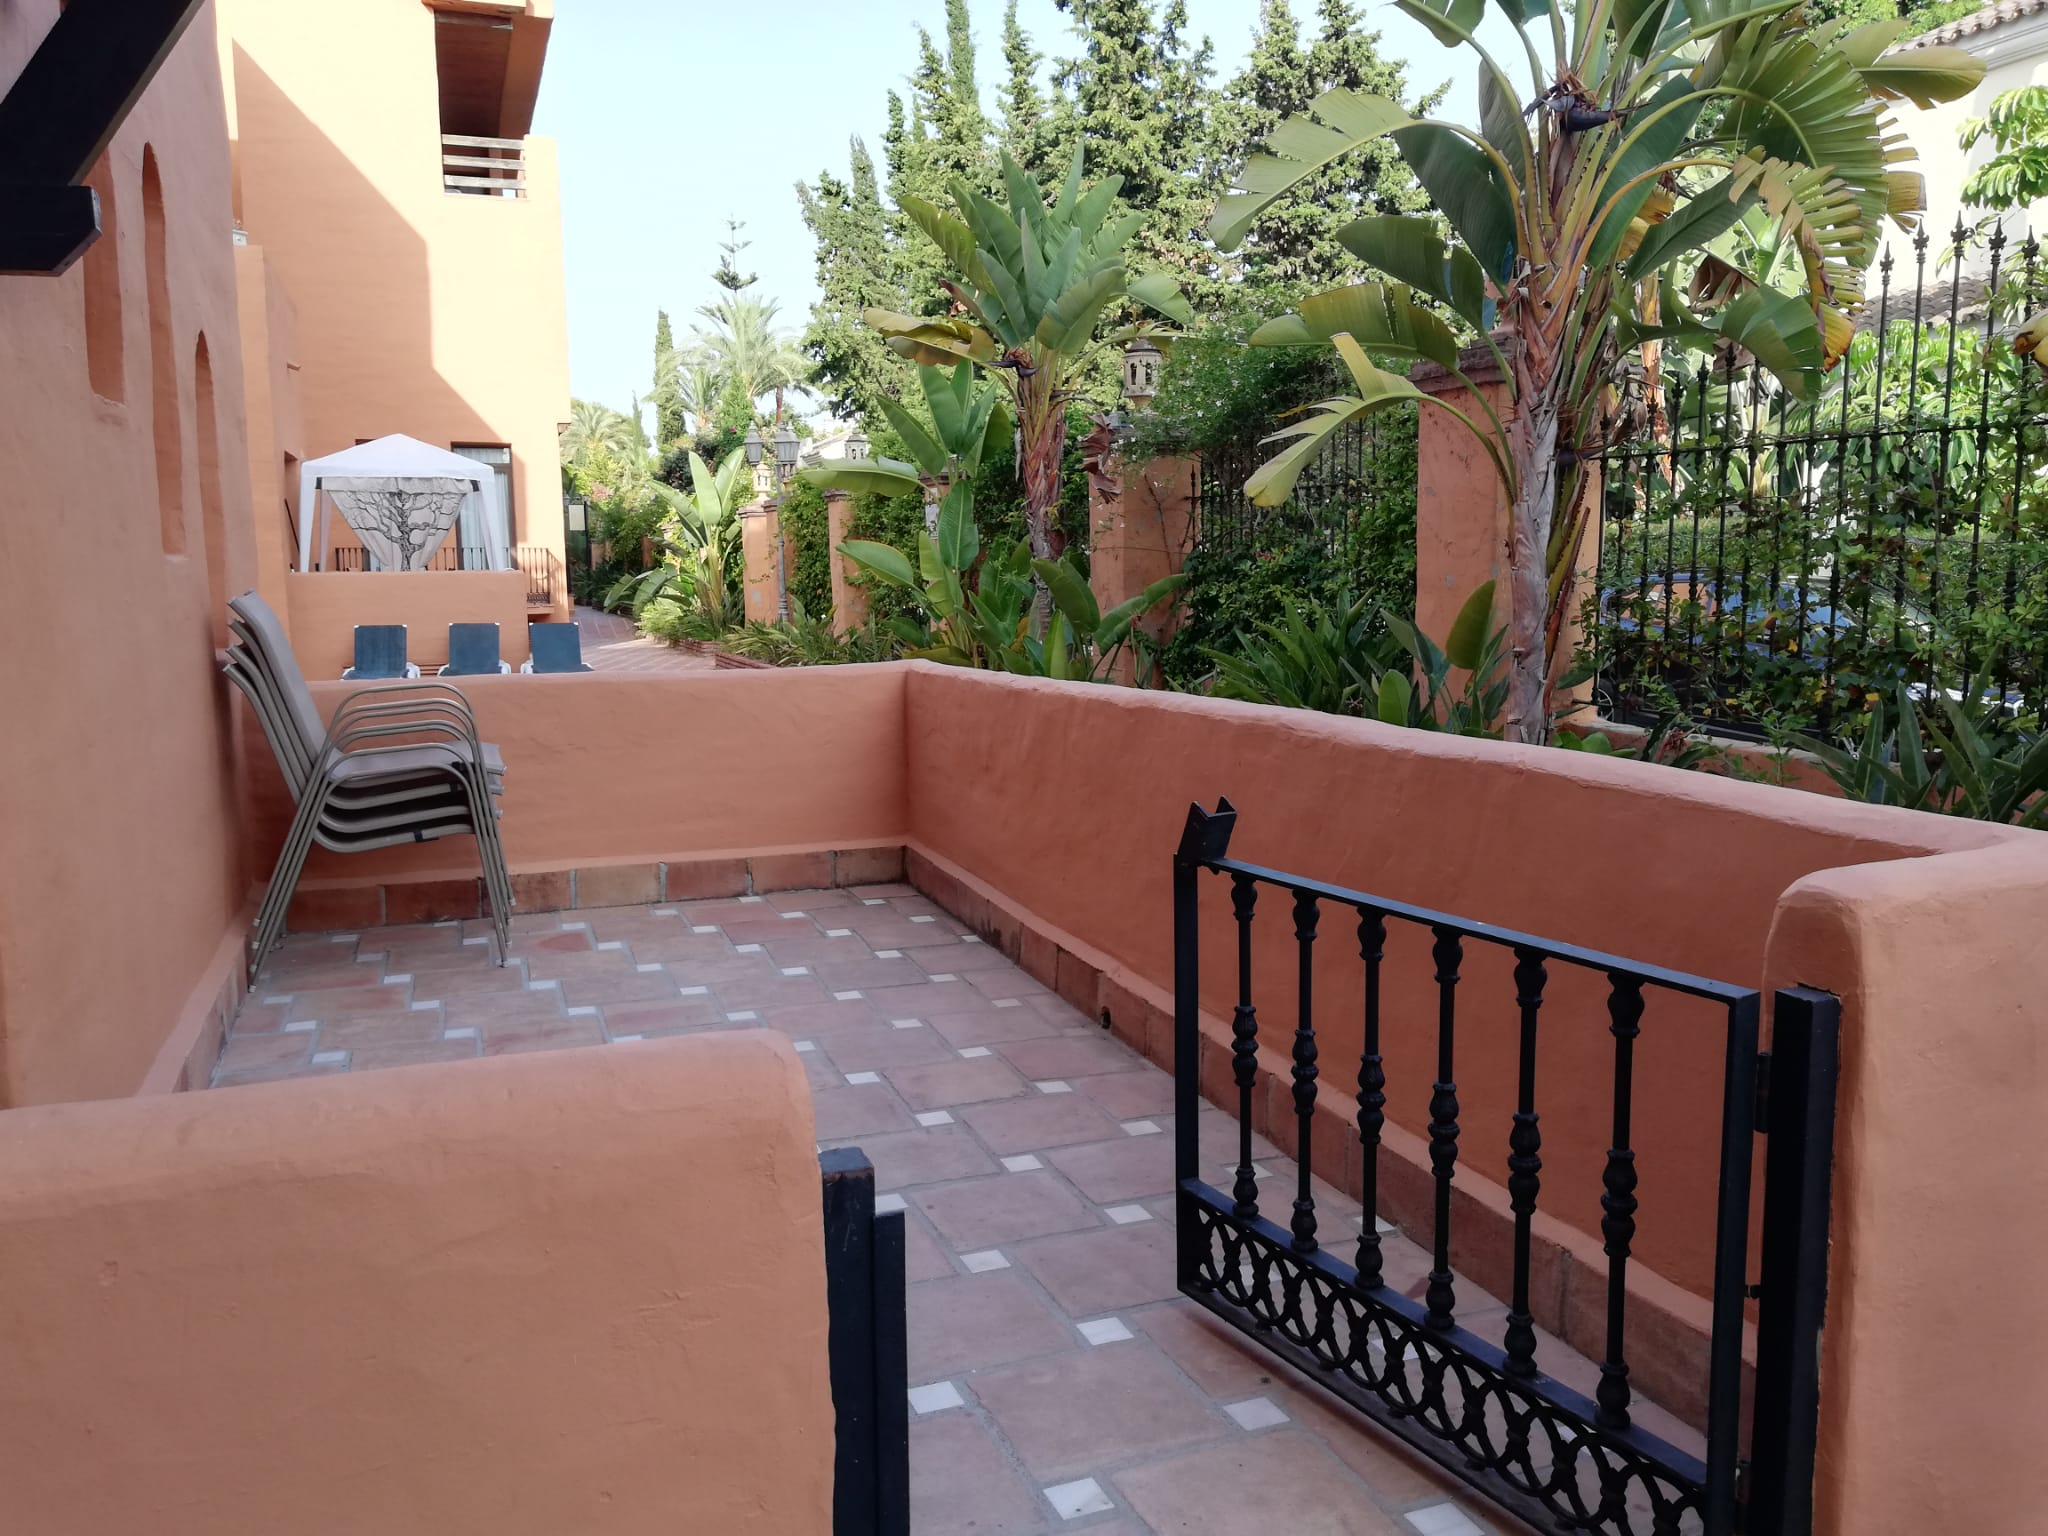 Studio in El Paraiso, Cancelada near the beach for rent - mibgroup.es